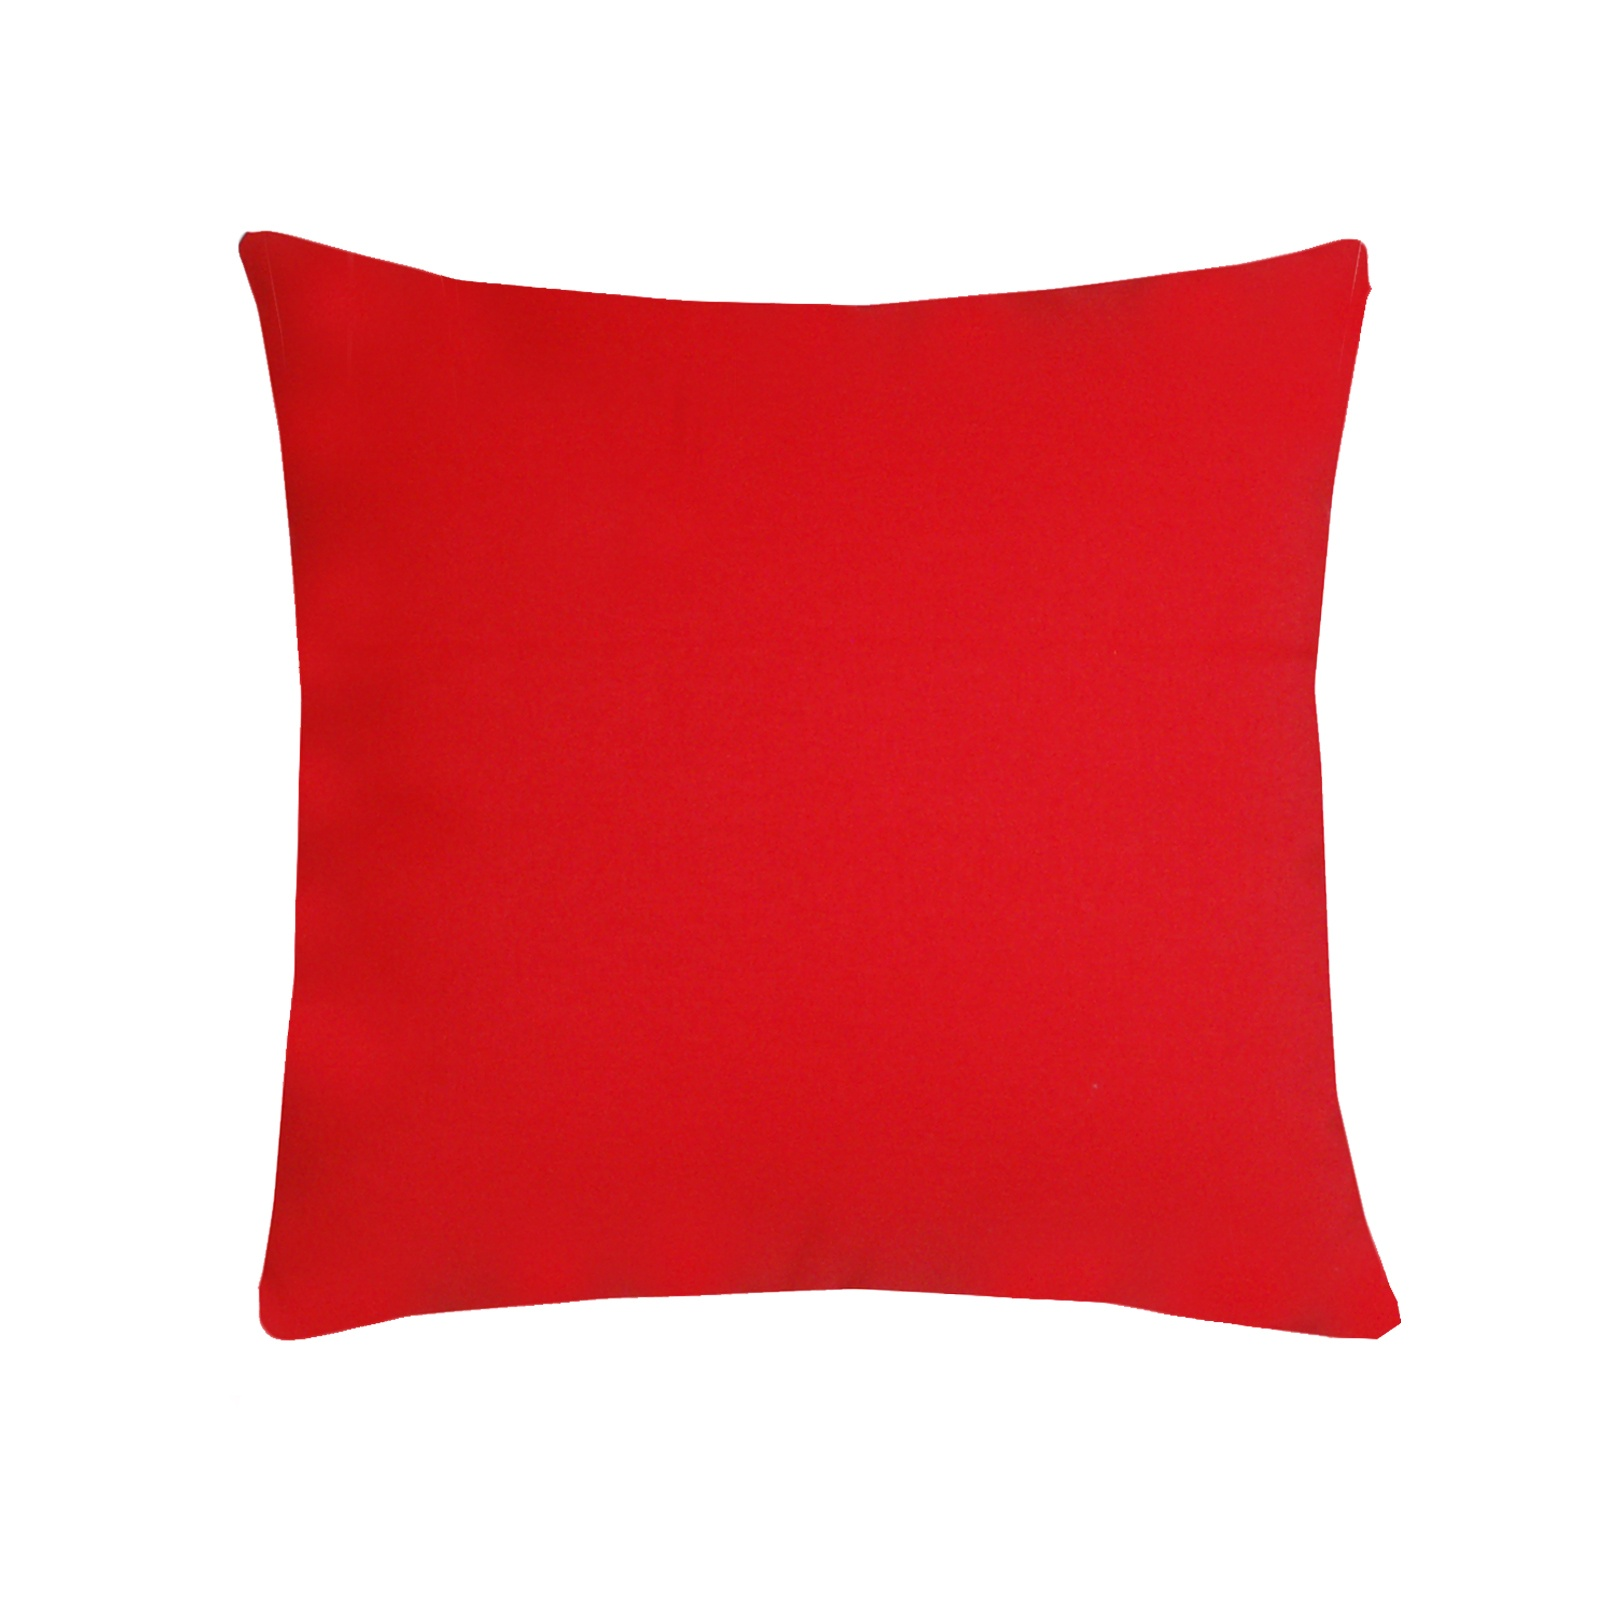 Throw Pillow Rental : Red Throw Pillows. 36 Dining Room Table Images. Red Throw Pillows. Gray Decorative Pillows ...